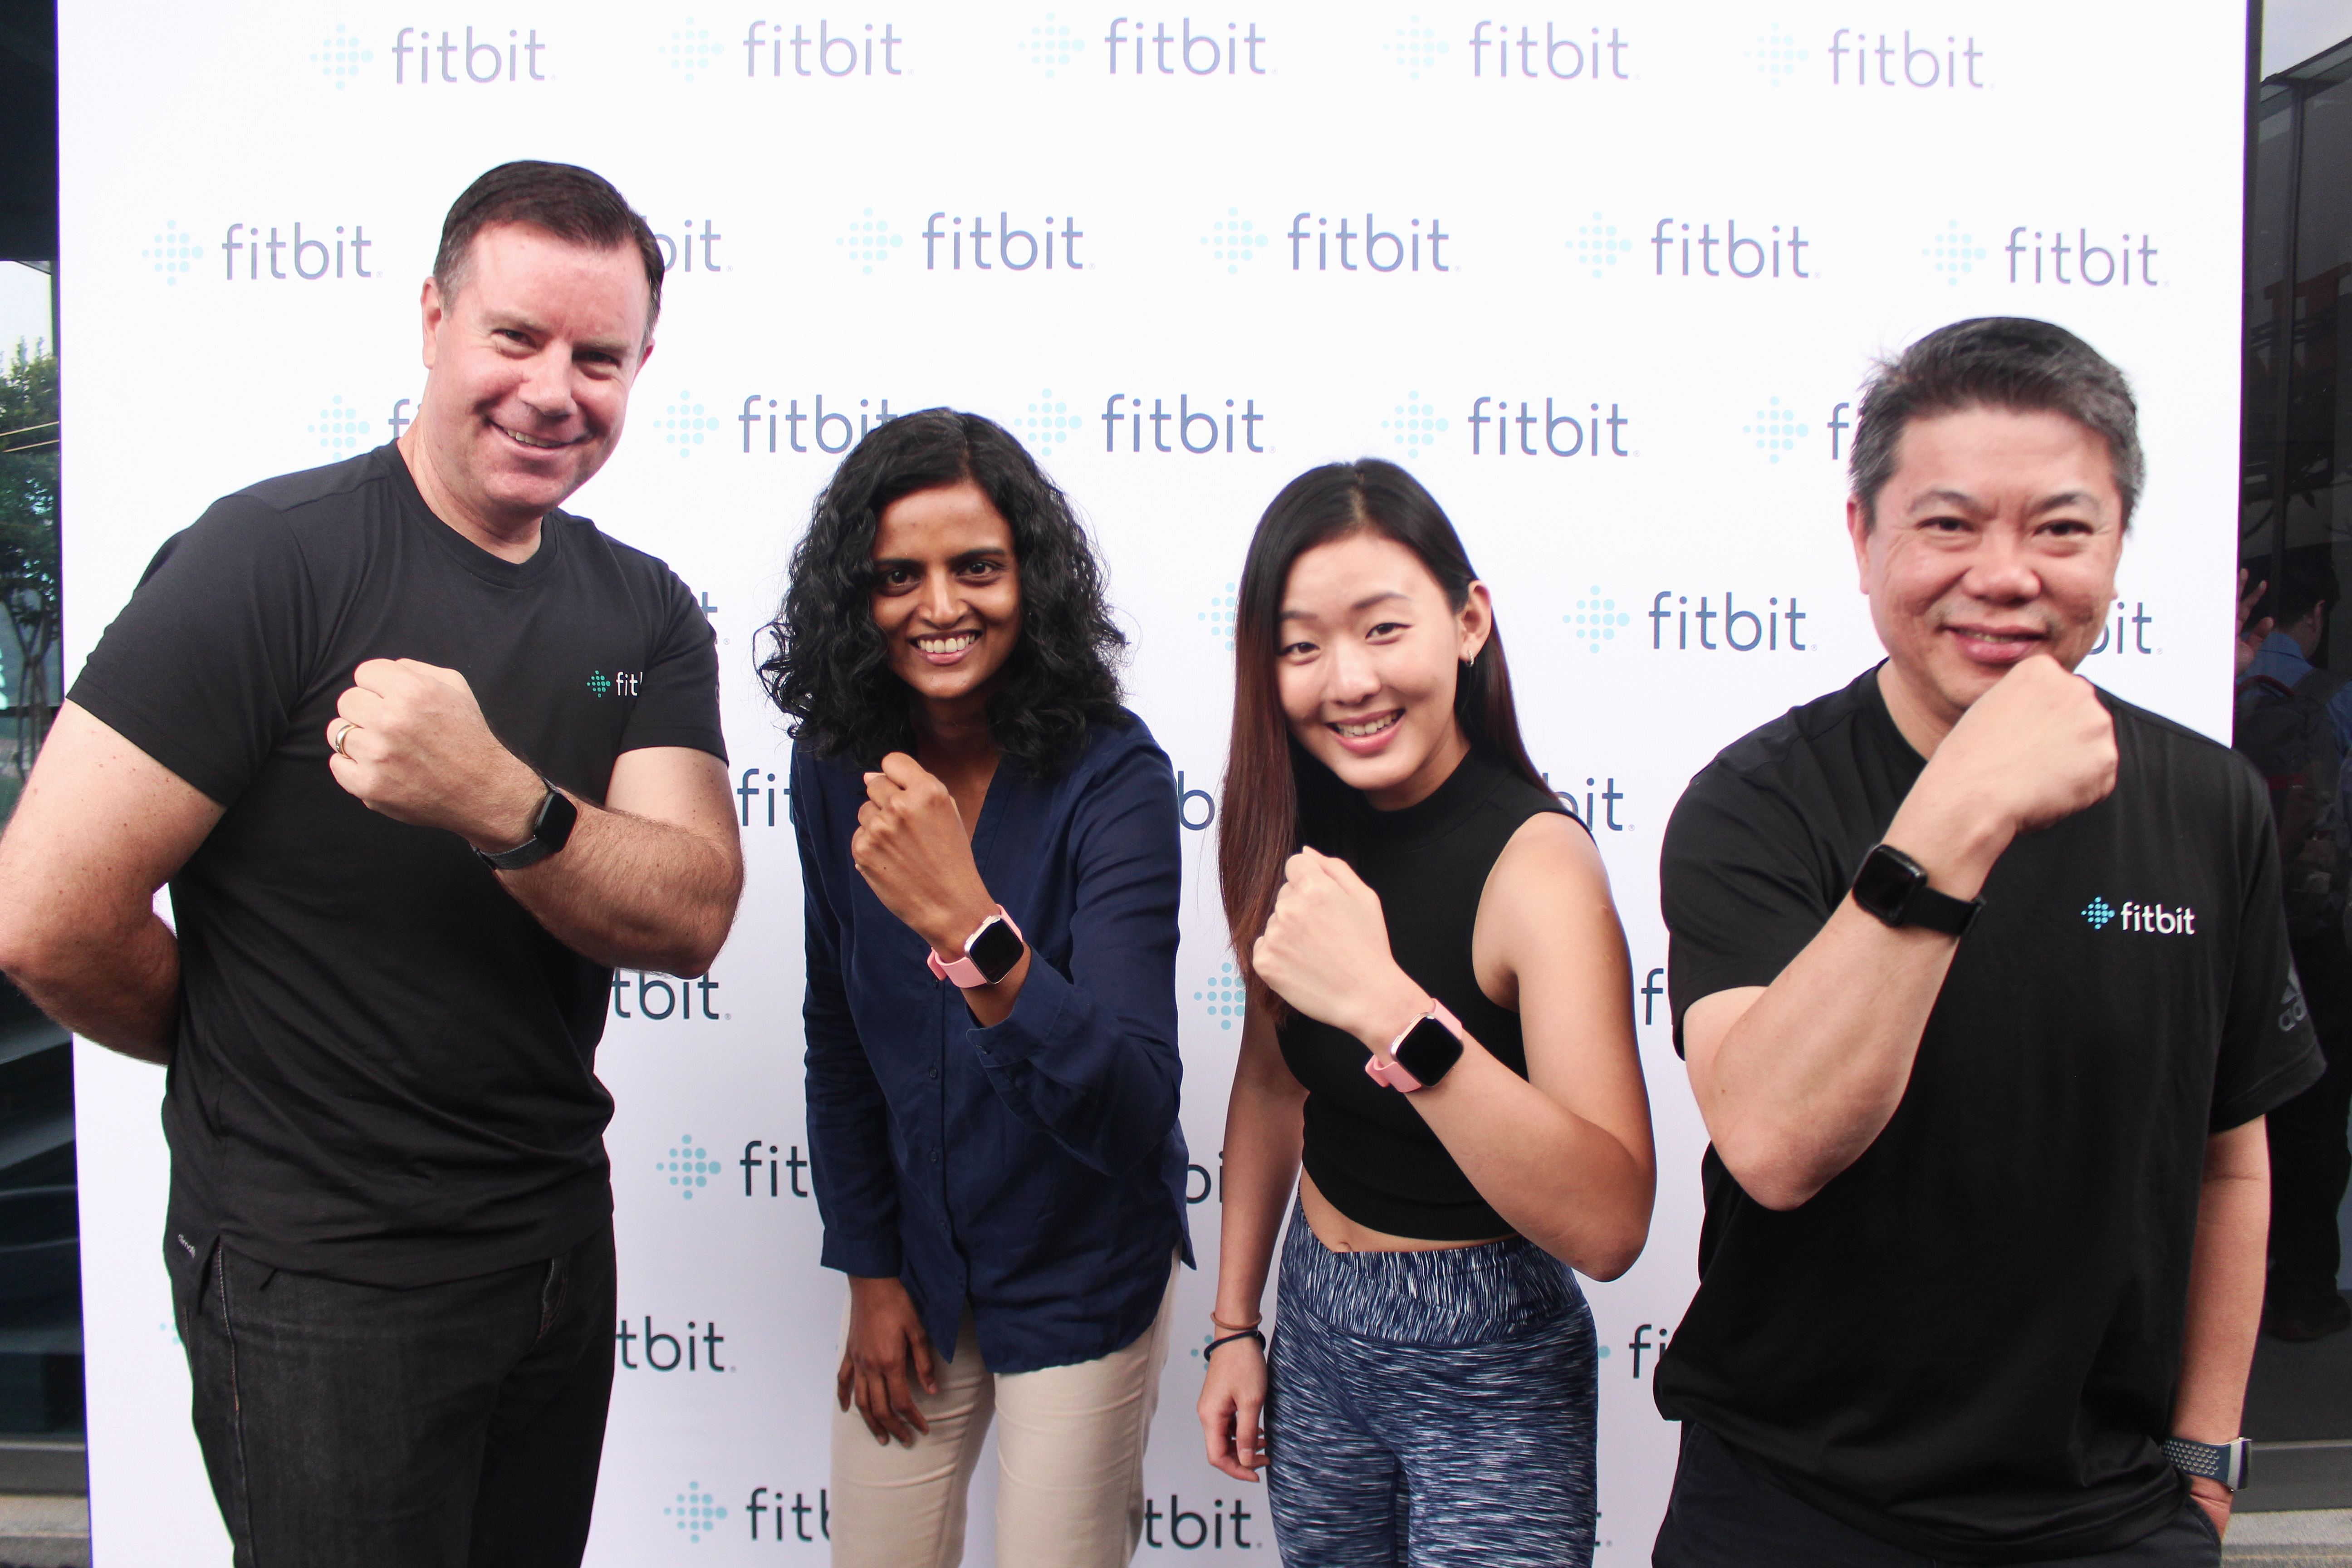 Fitbit launches Versa smartwatch and releases OS 2 0 update | The